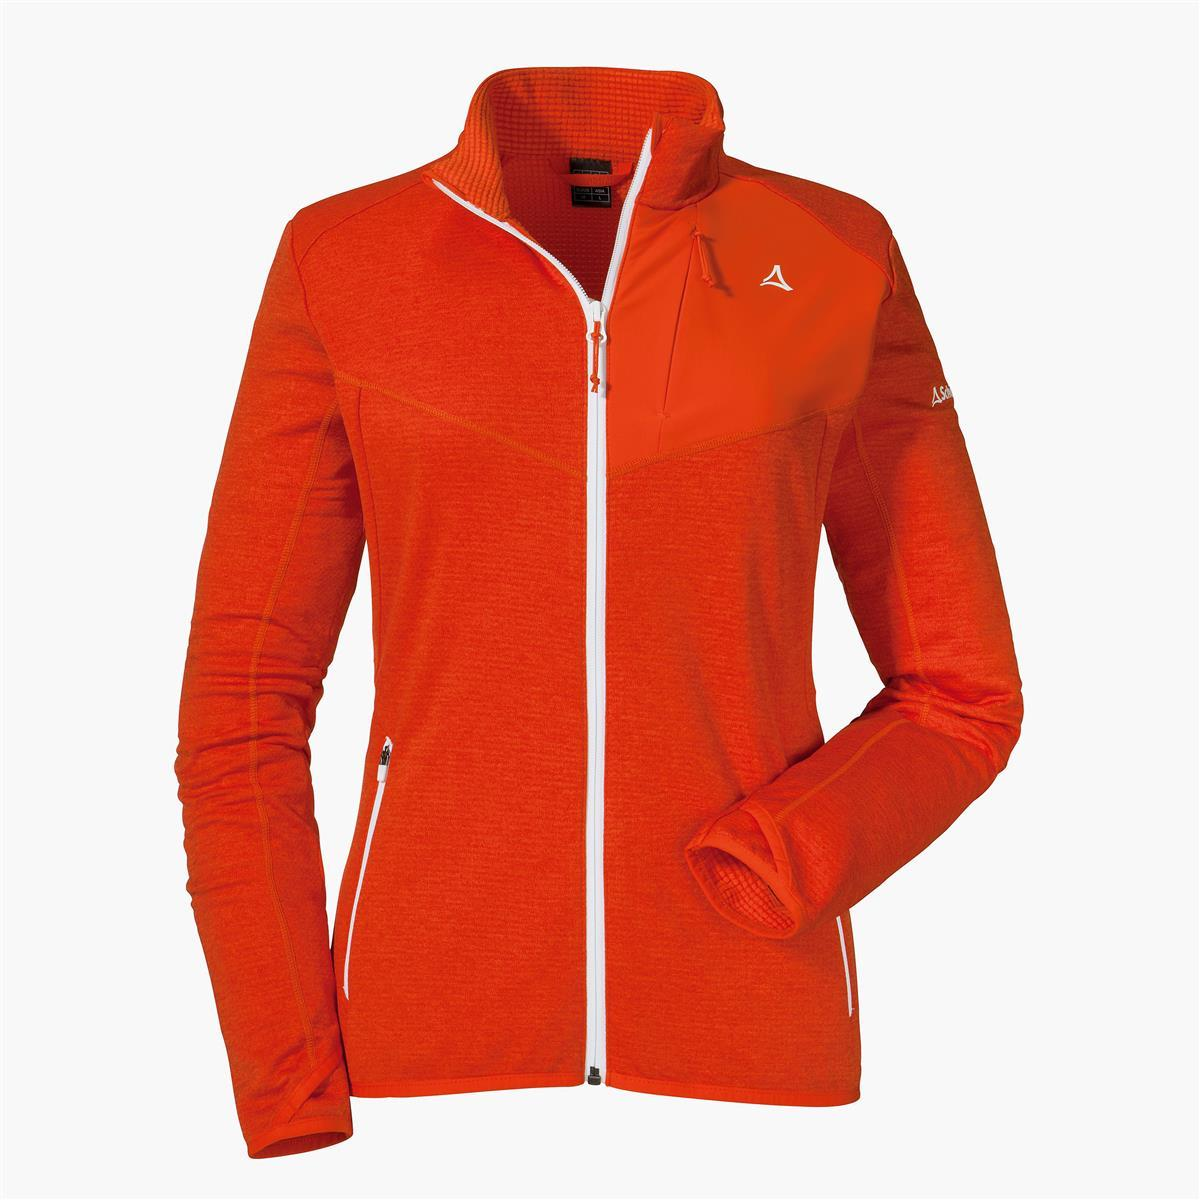 Schöffel Fleece Jacket Houston1